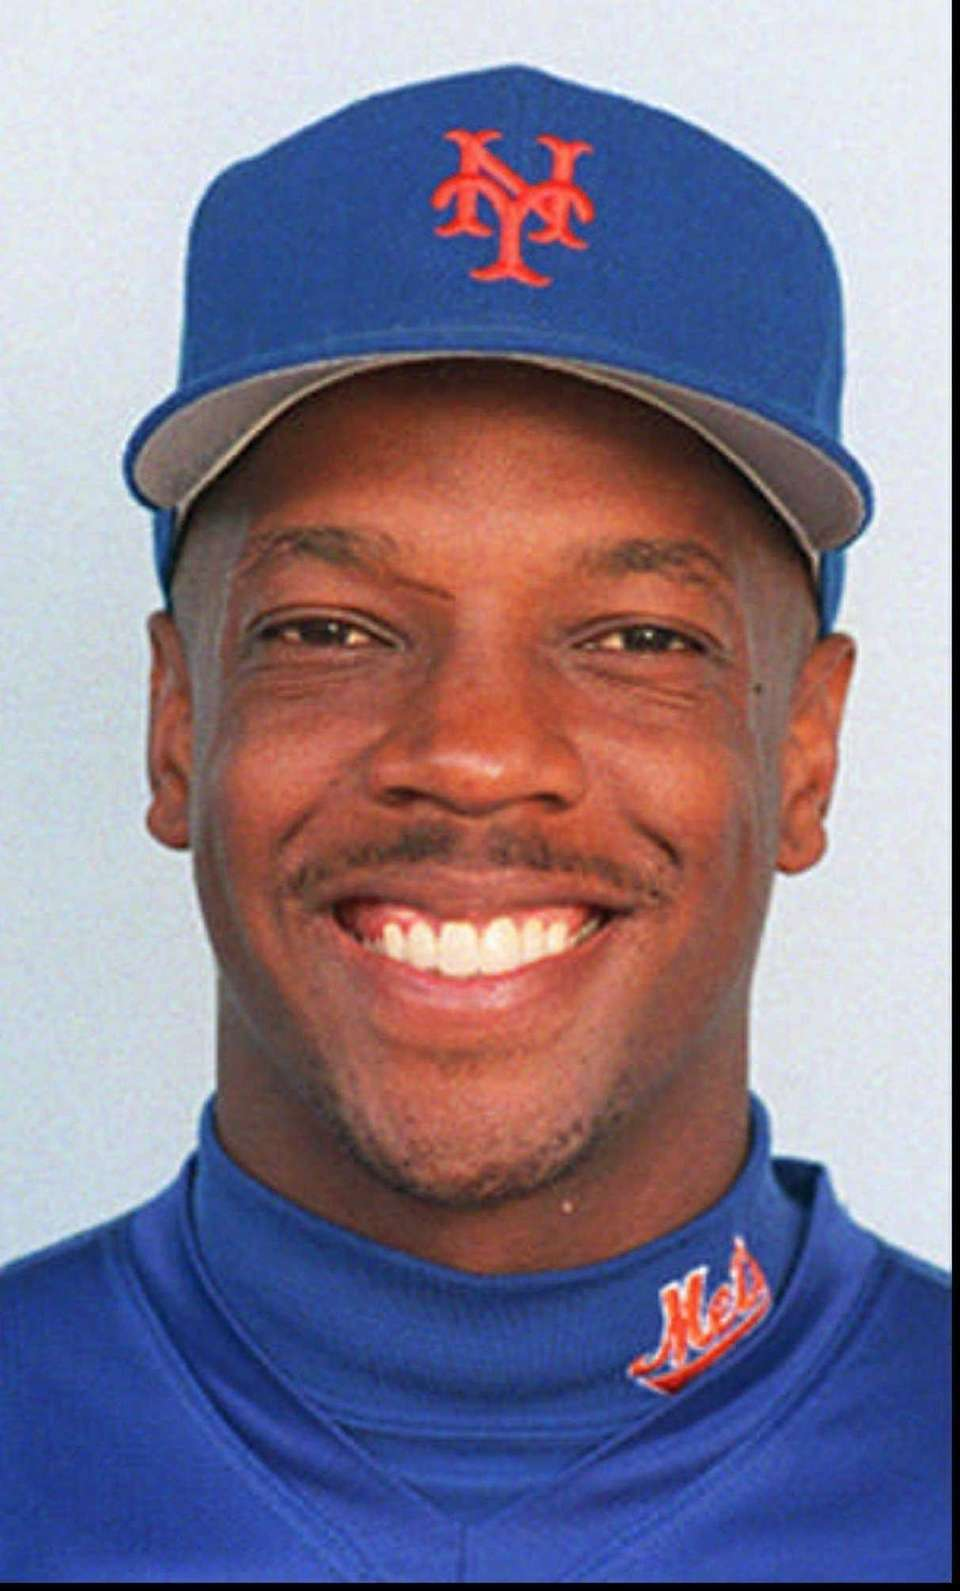 Gooden's '86 stats were fine but paled in